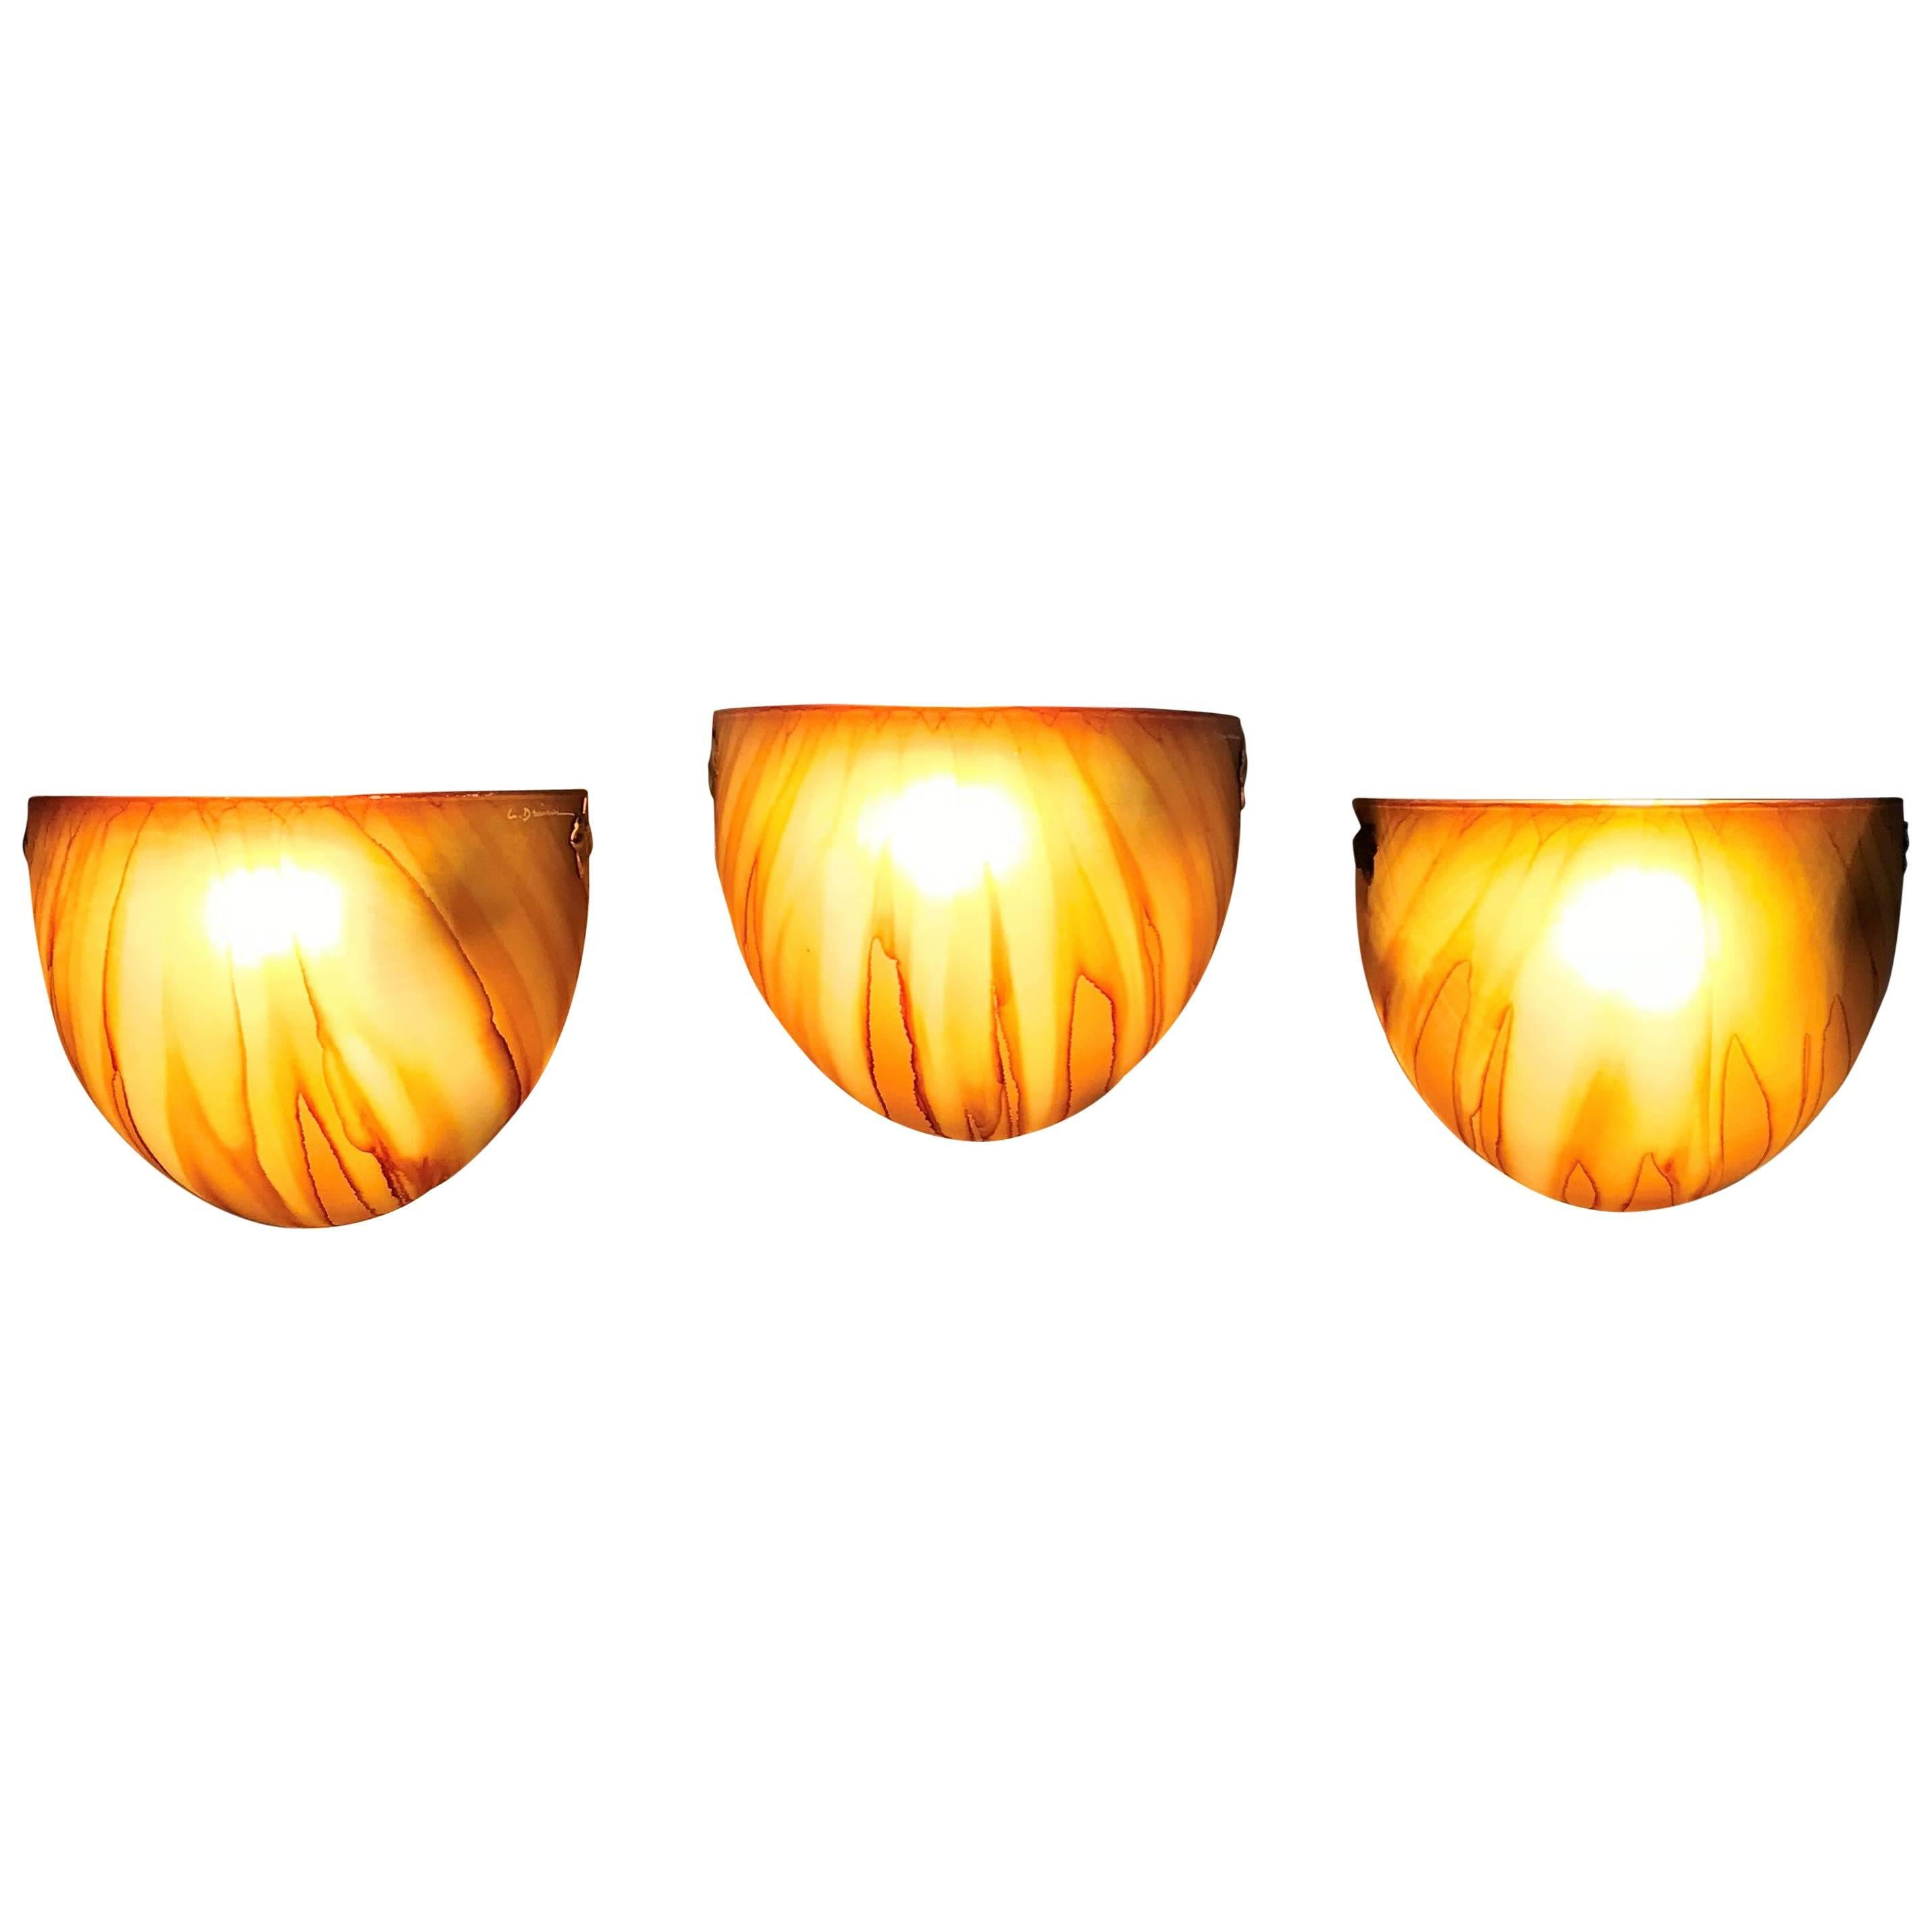 Three Mid-Century Modern Sconces by Louis Drimmer, France, circa 1970